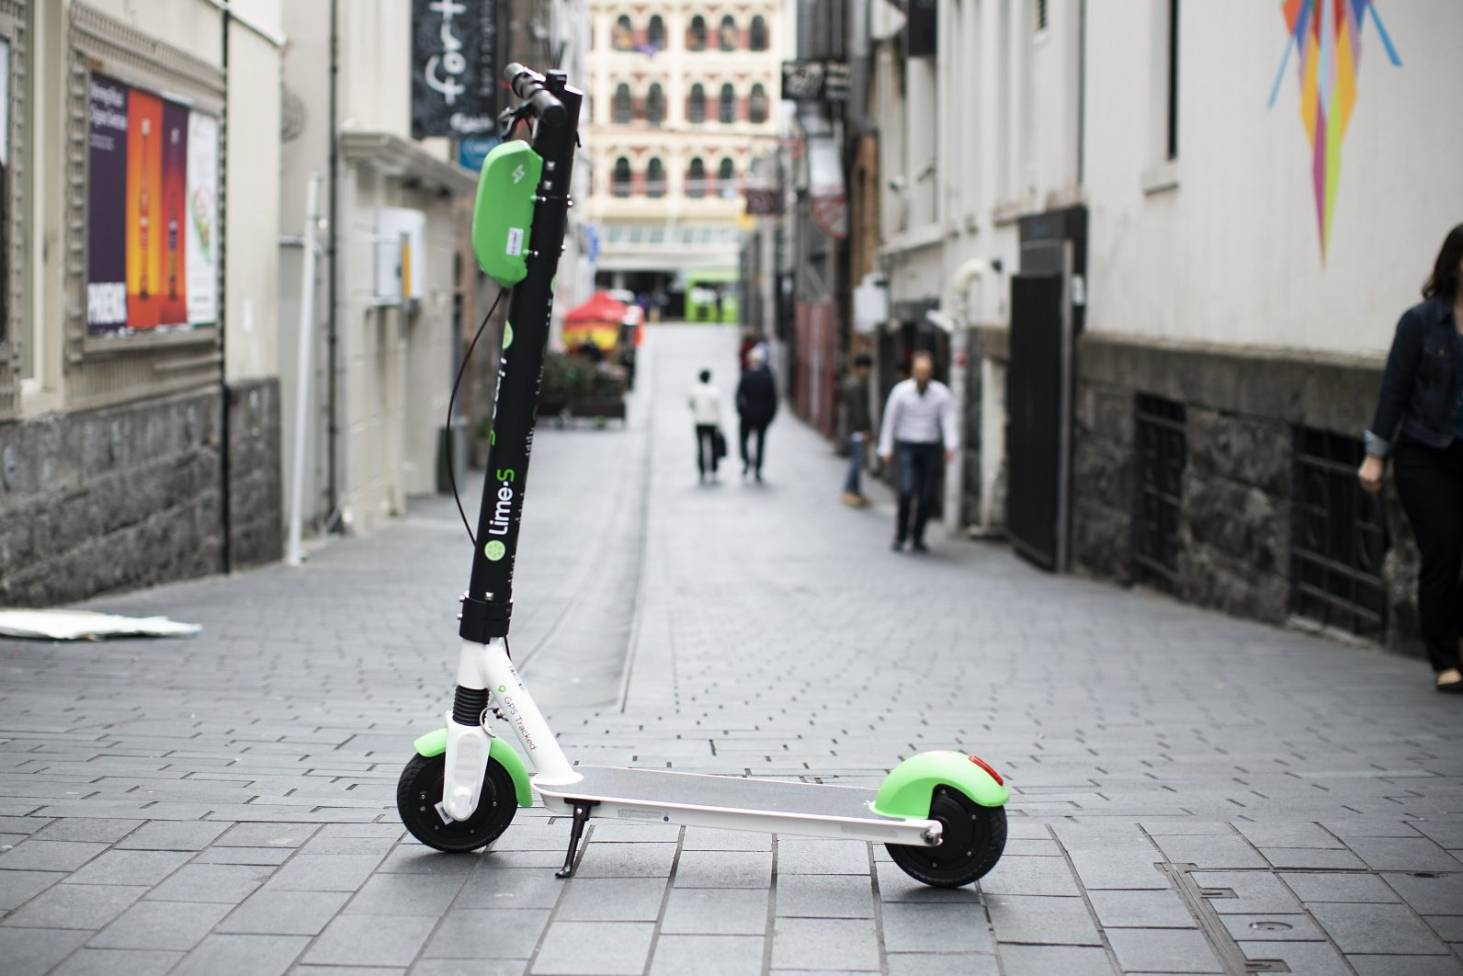 Explainer: Where can you ride e-scooters and what are the